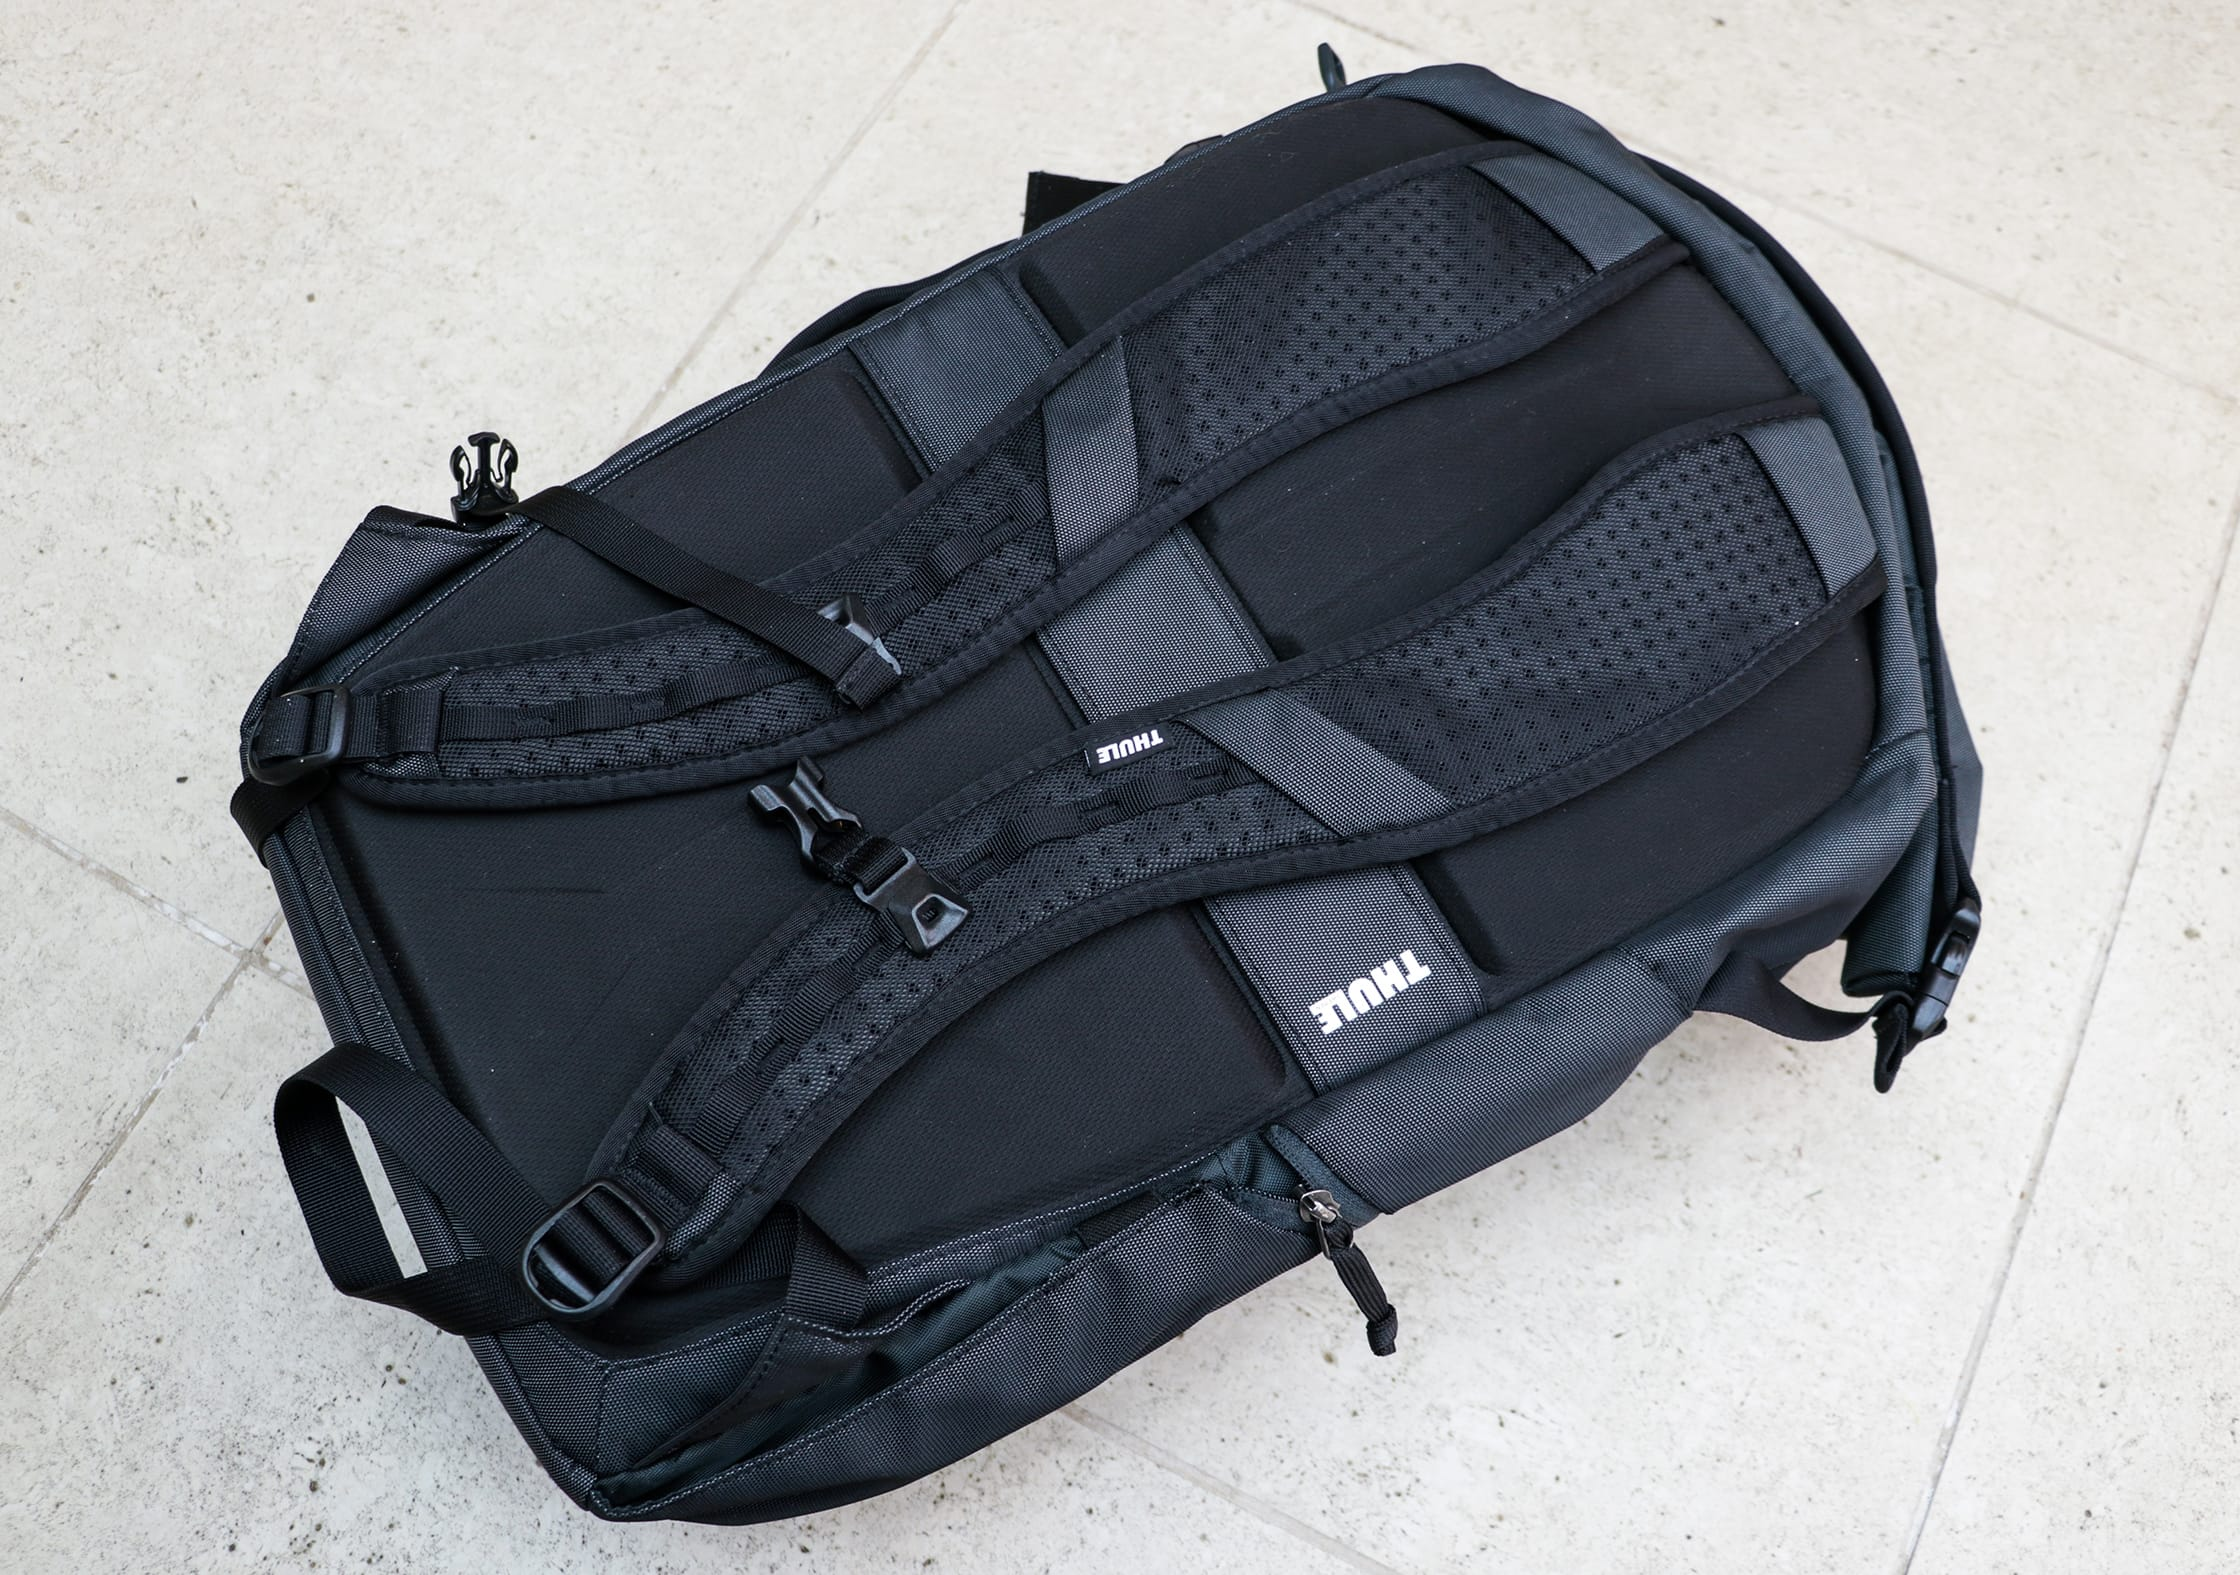 Shoulder Straps on the Thule Subterra